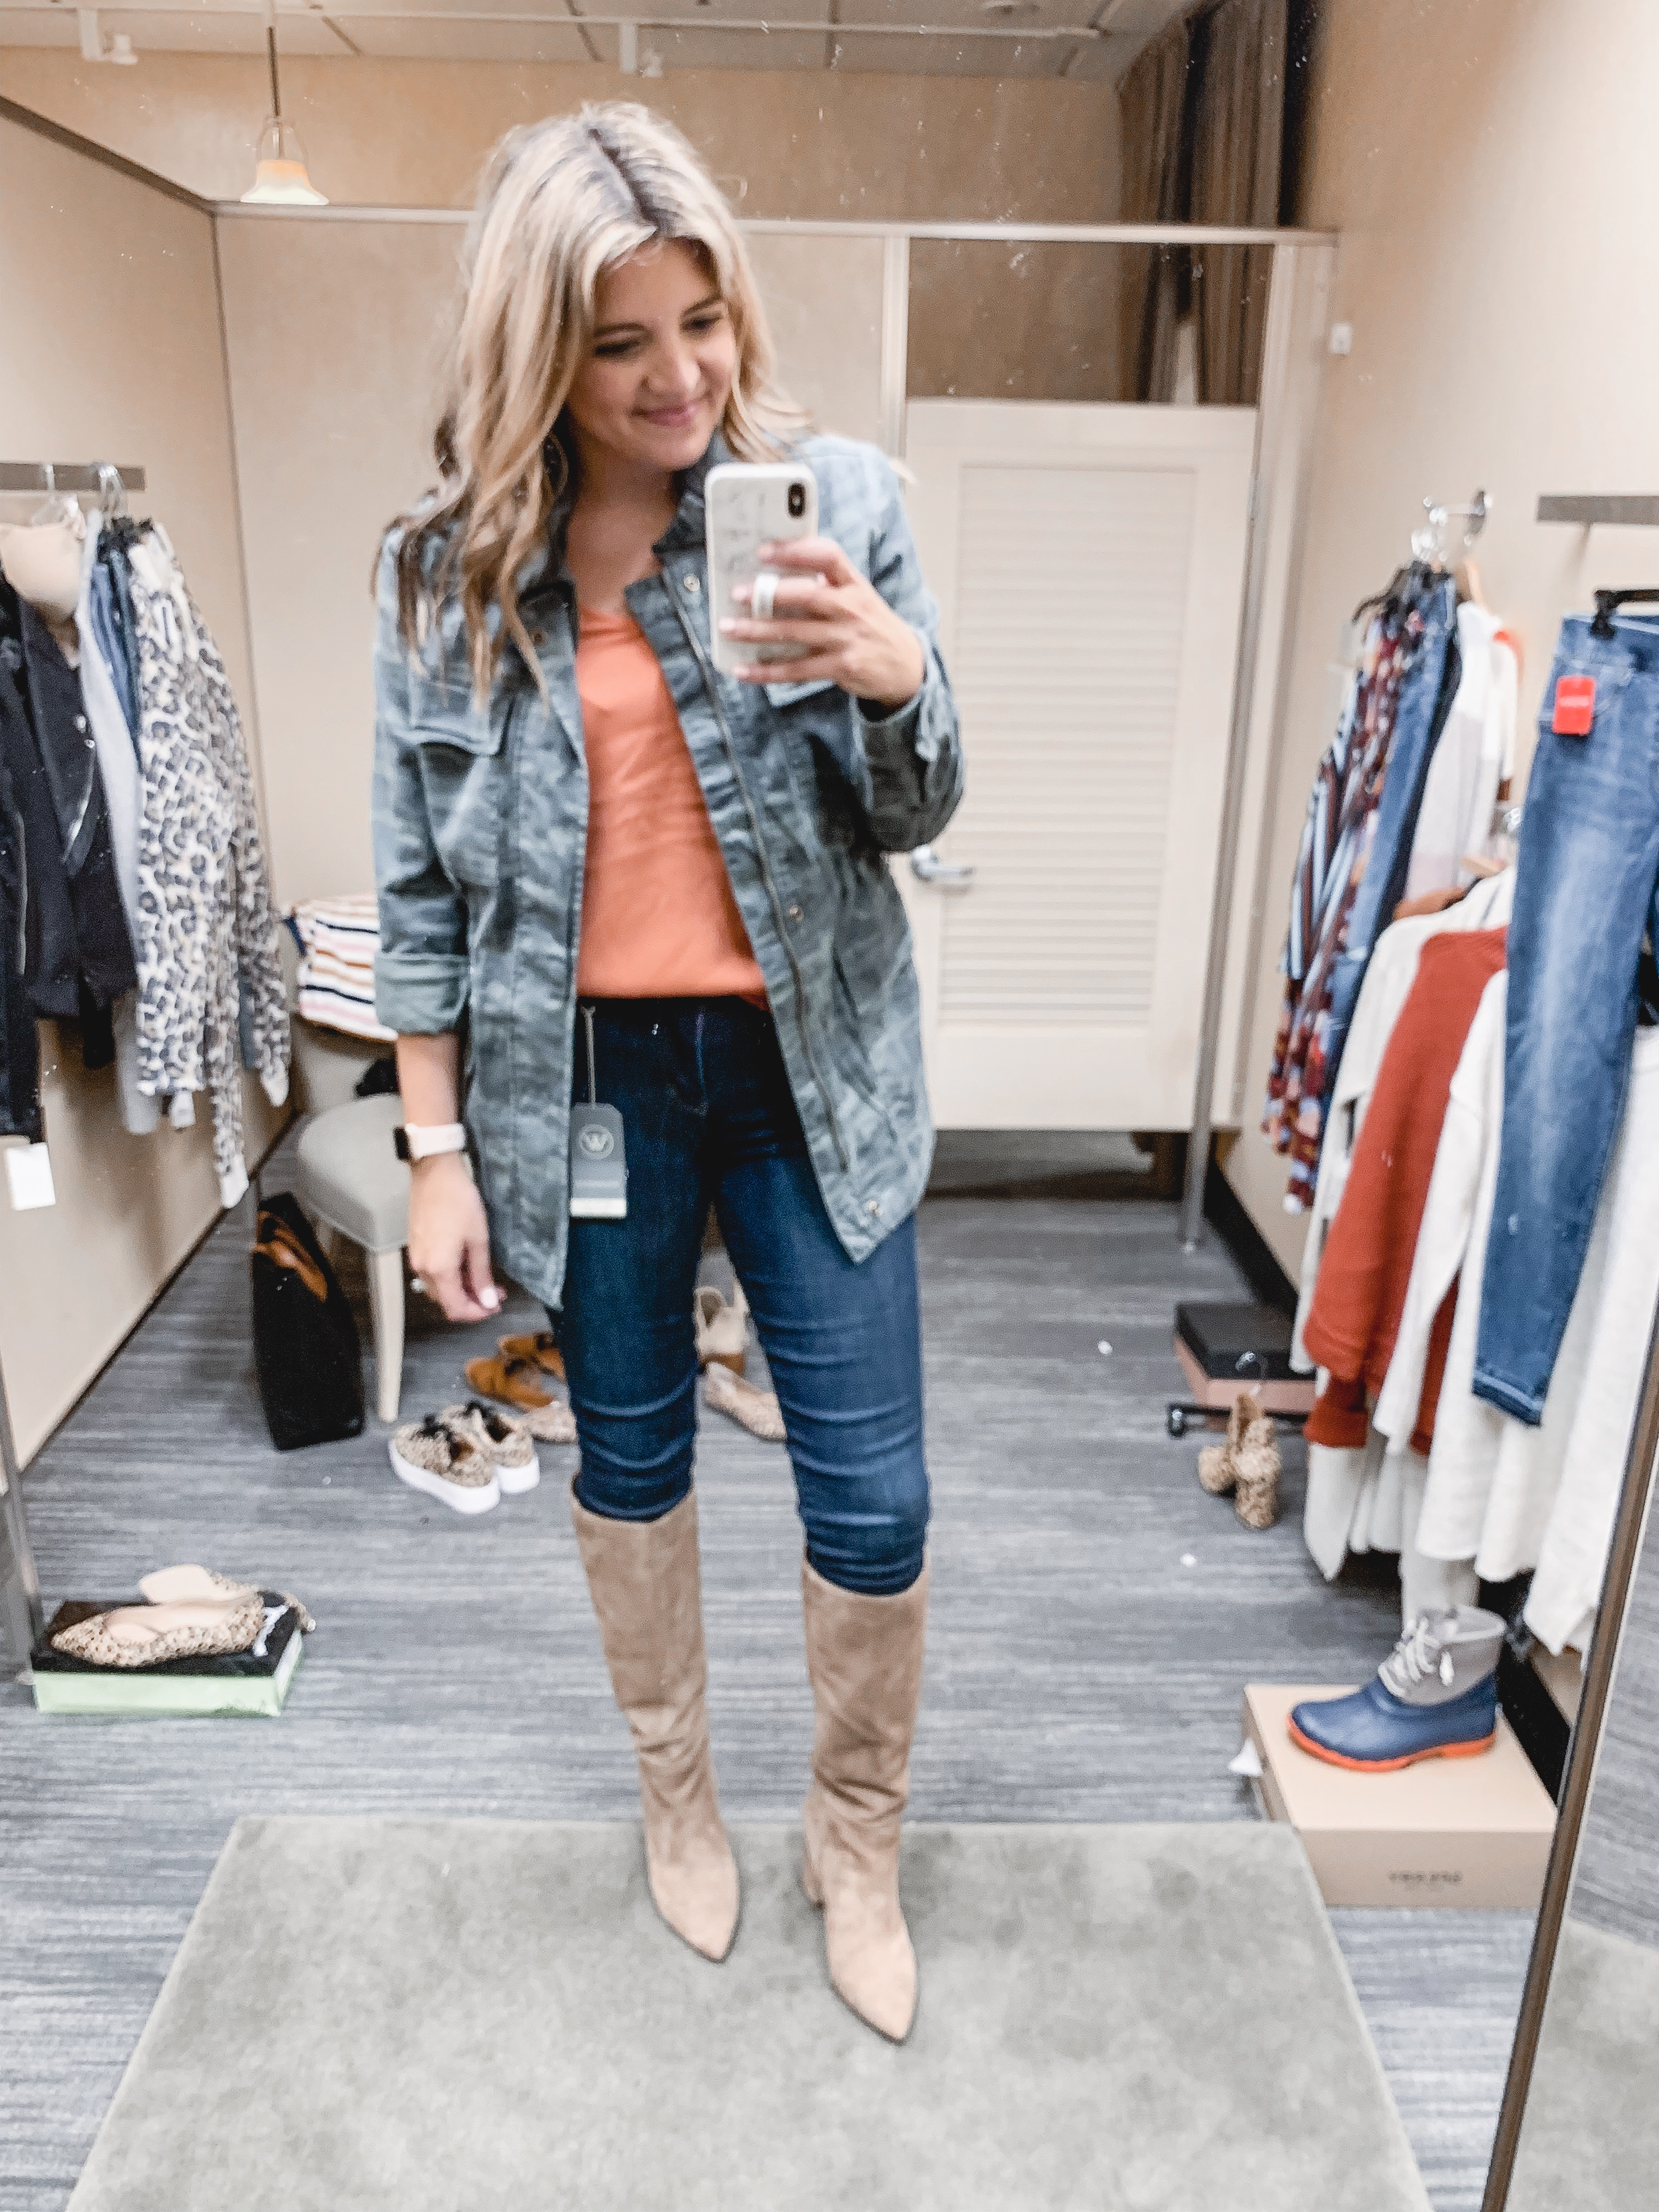 Virginia blogger, Lauren Dix, shares over 25 outfits from the Nordstrom Anniversary Sale! See all her recommendations in her post at bylaurenm.com!